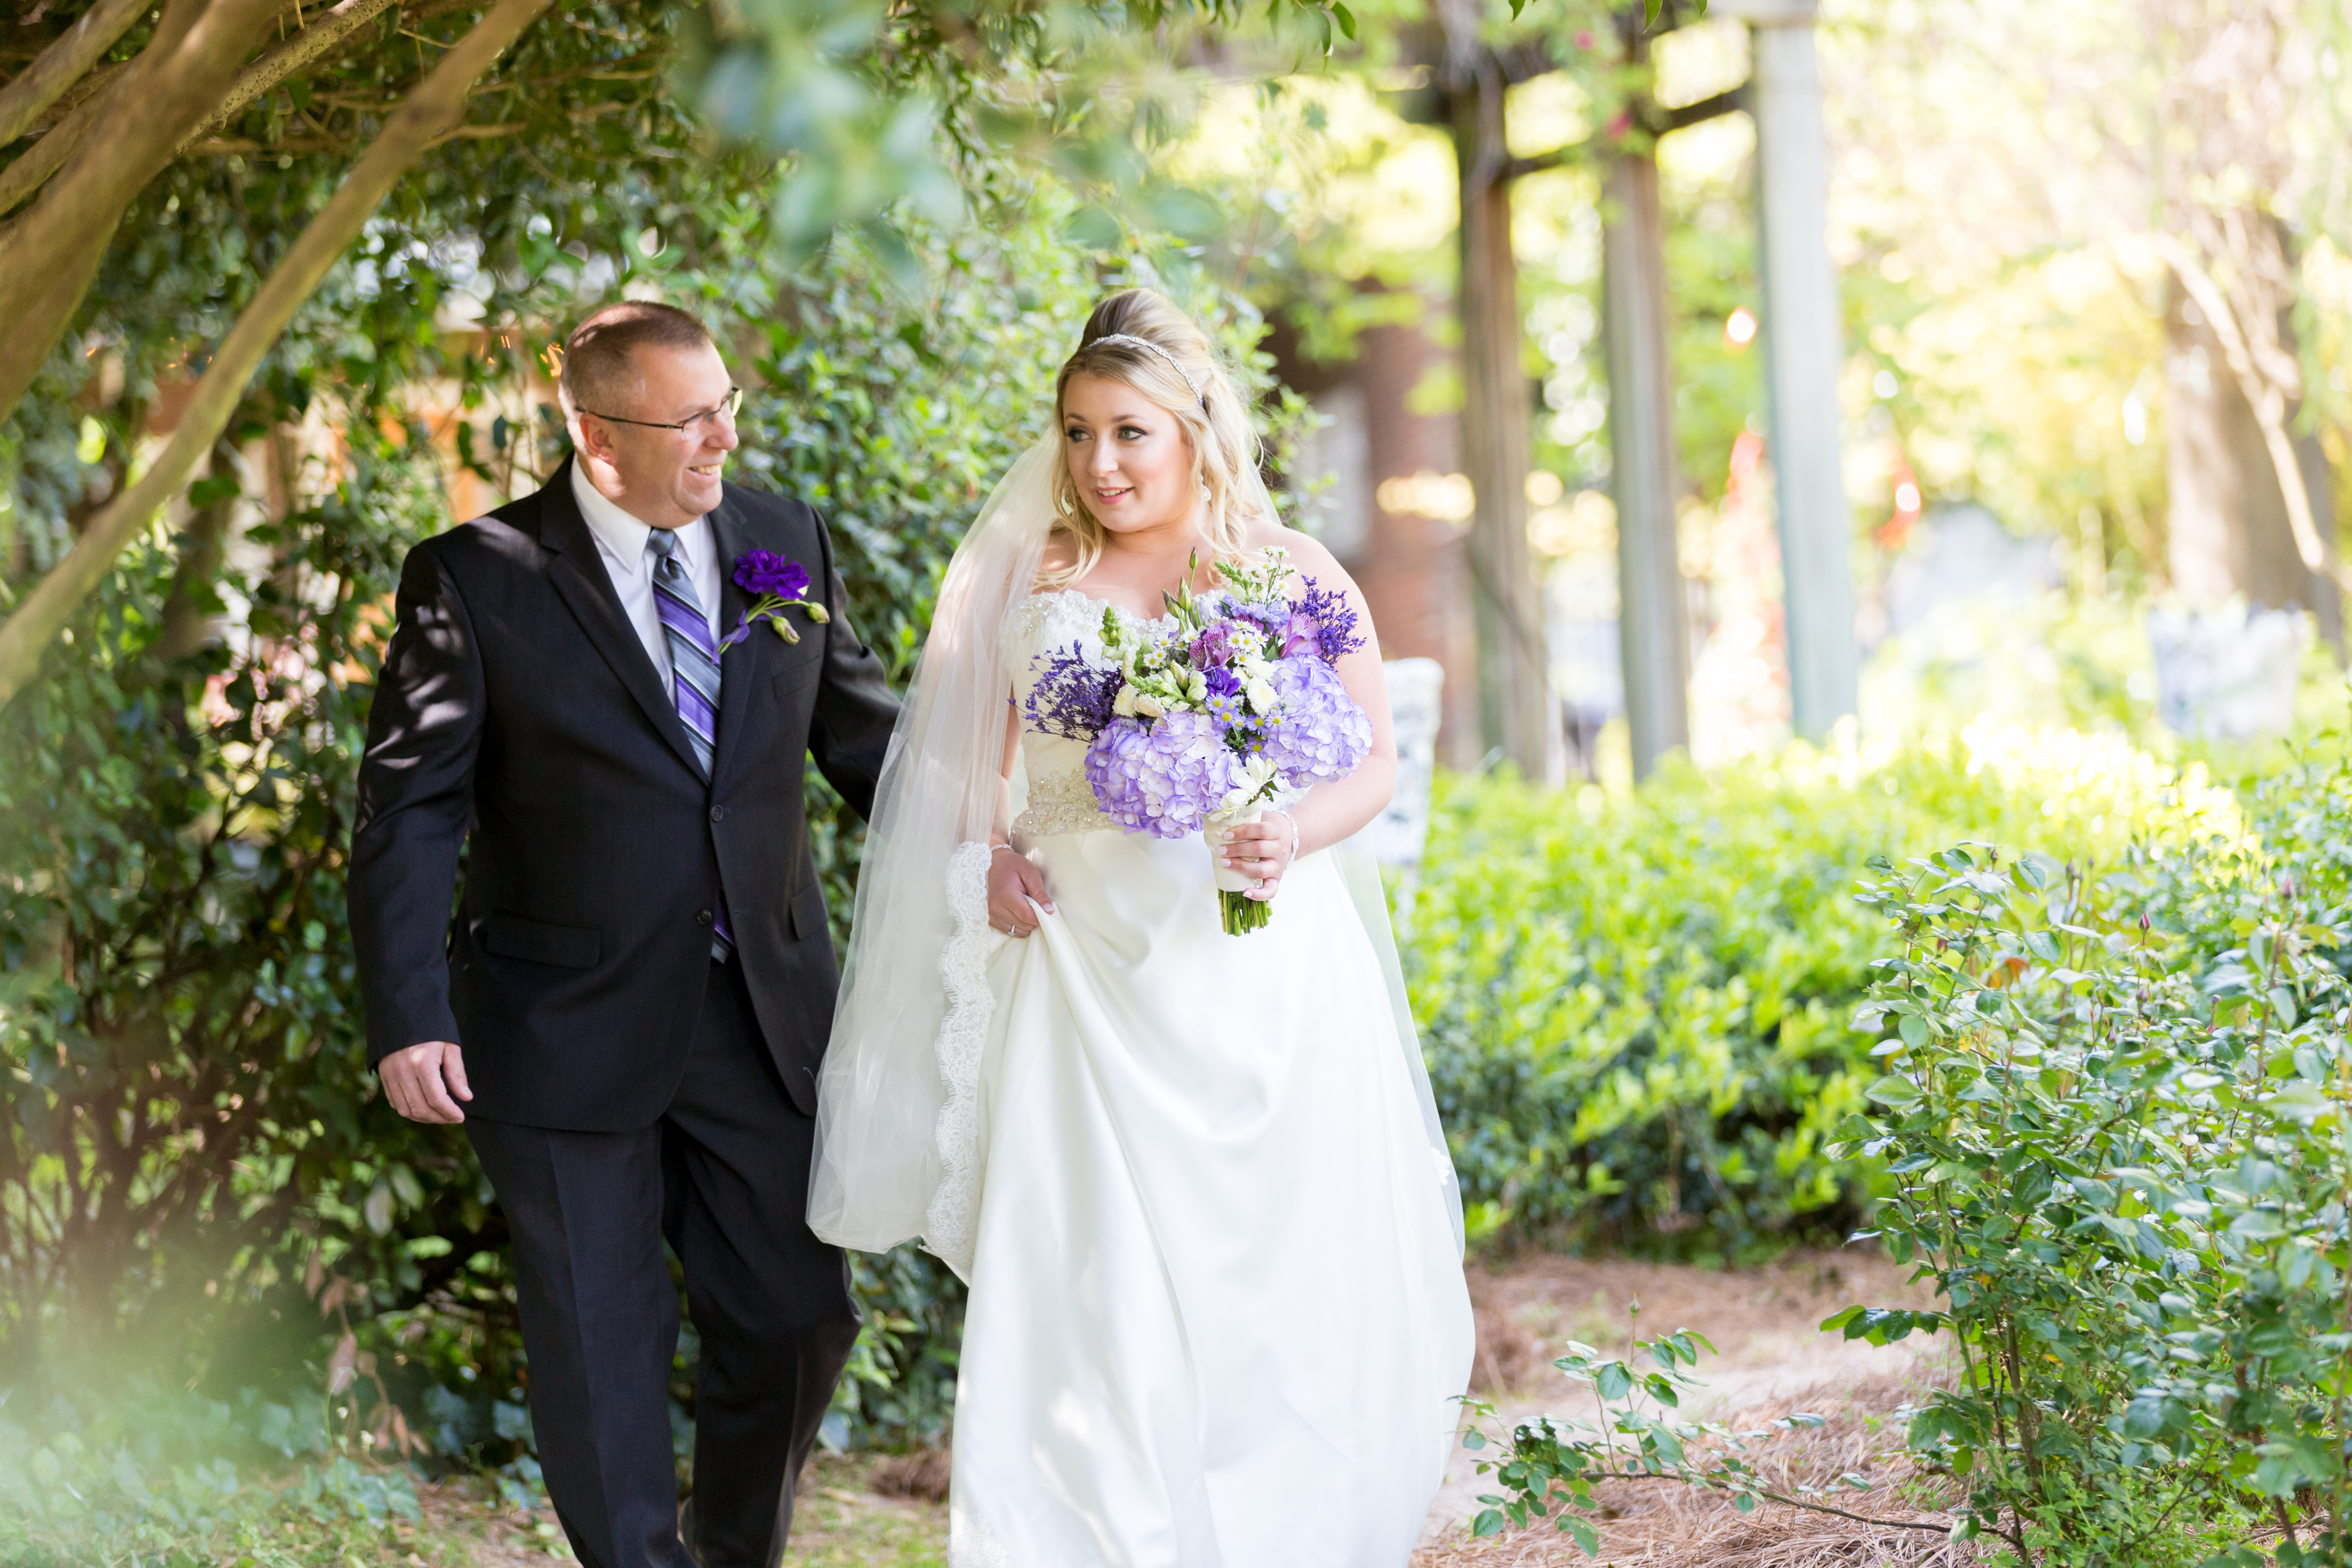 father of the bride walking with the bride down the aisle at McGill Rose Garden in Charlotte NC